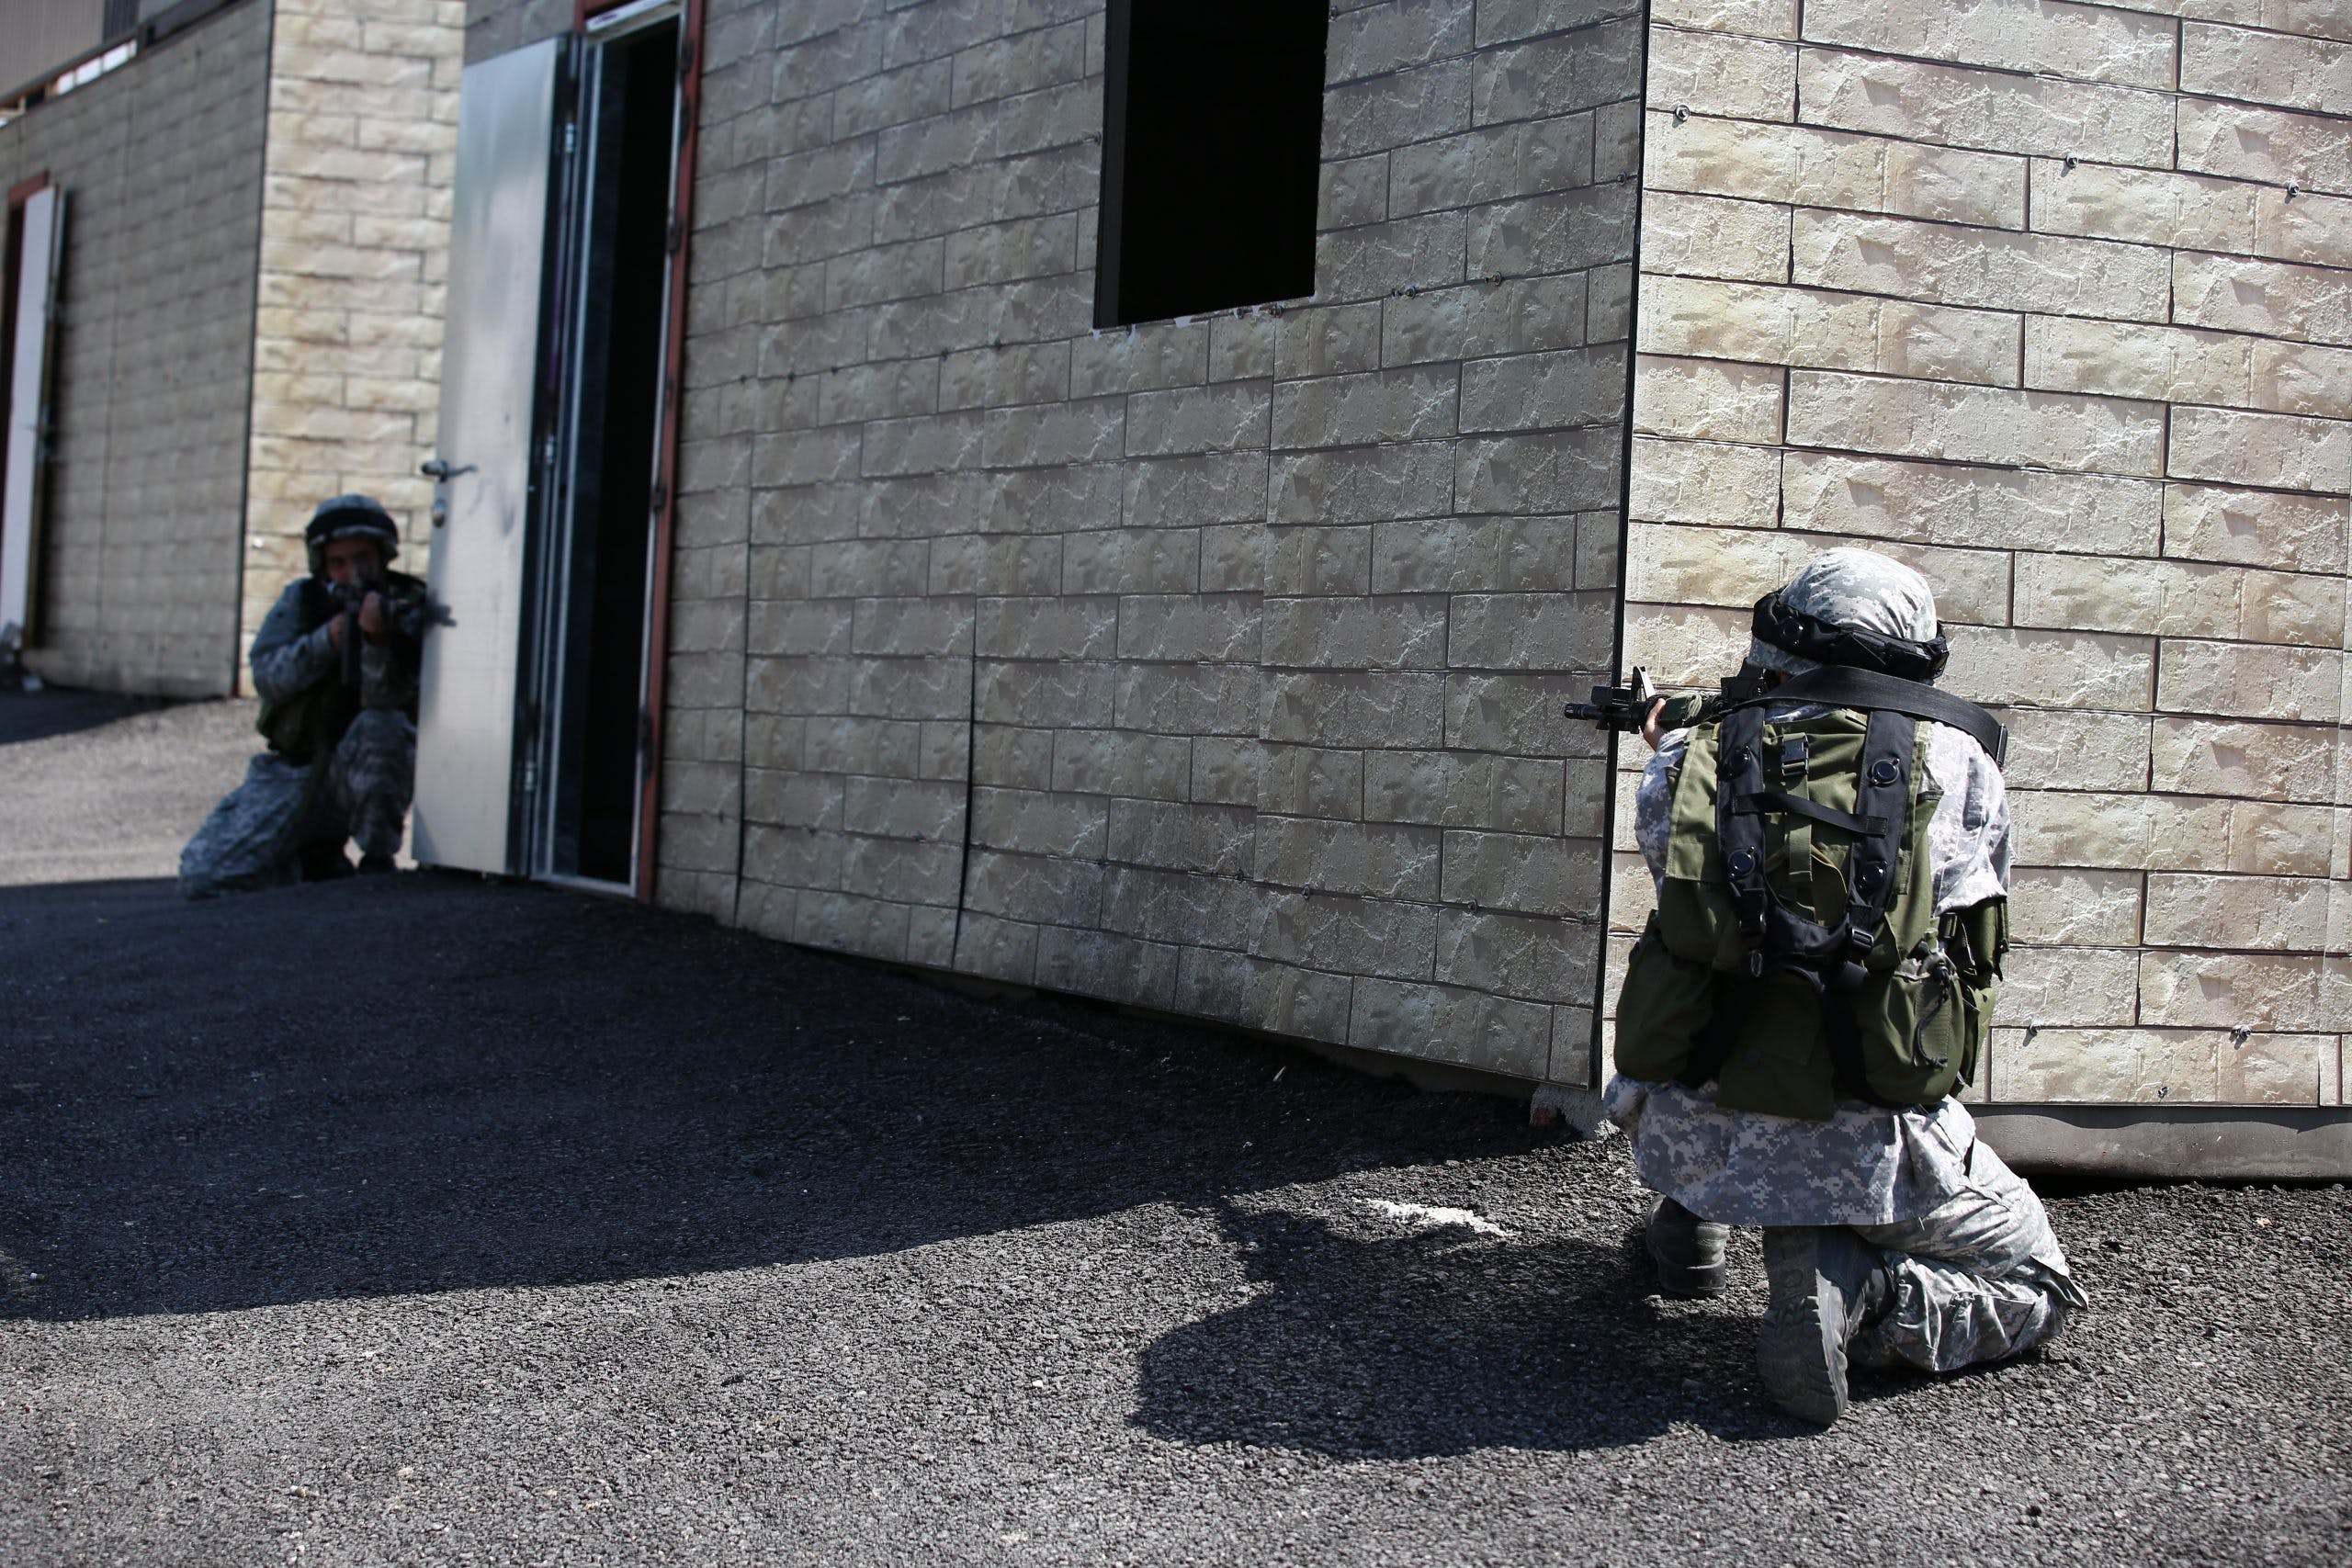 <p>A Force-on-Force, Tactical Engagement Simulation (TES) system that simulates the use of a real weapon regardless of location, safety limitations, and costs.</p>